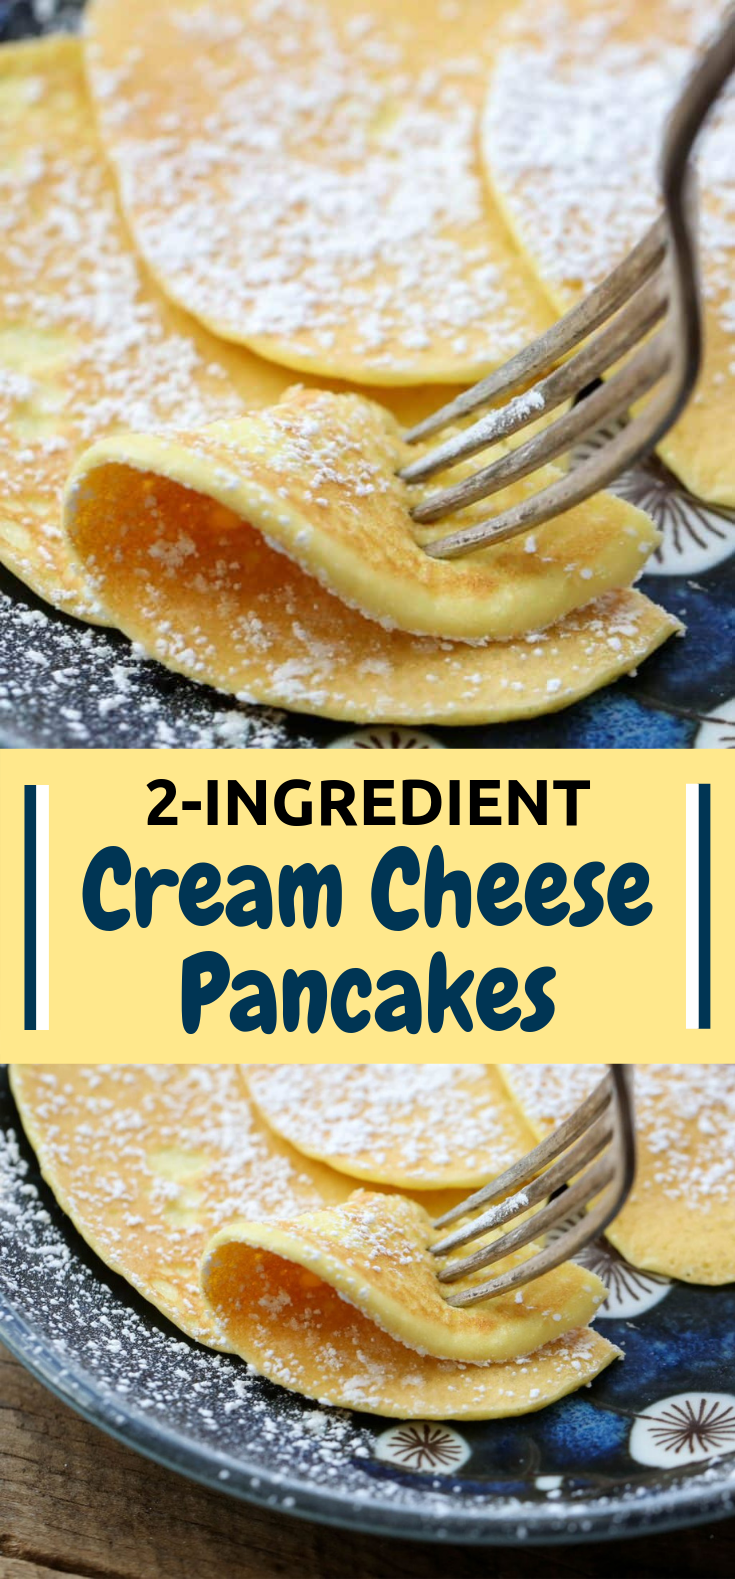 2-Ingredient Cream Cheese Pancakes #keto #healthyfood